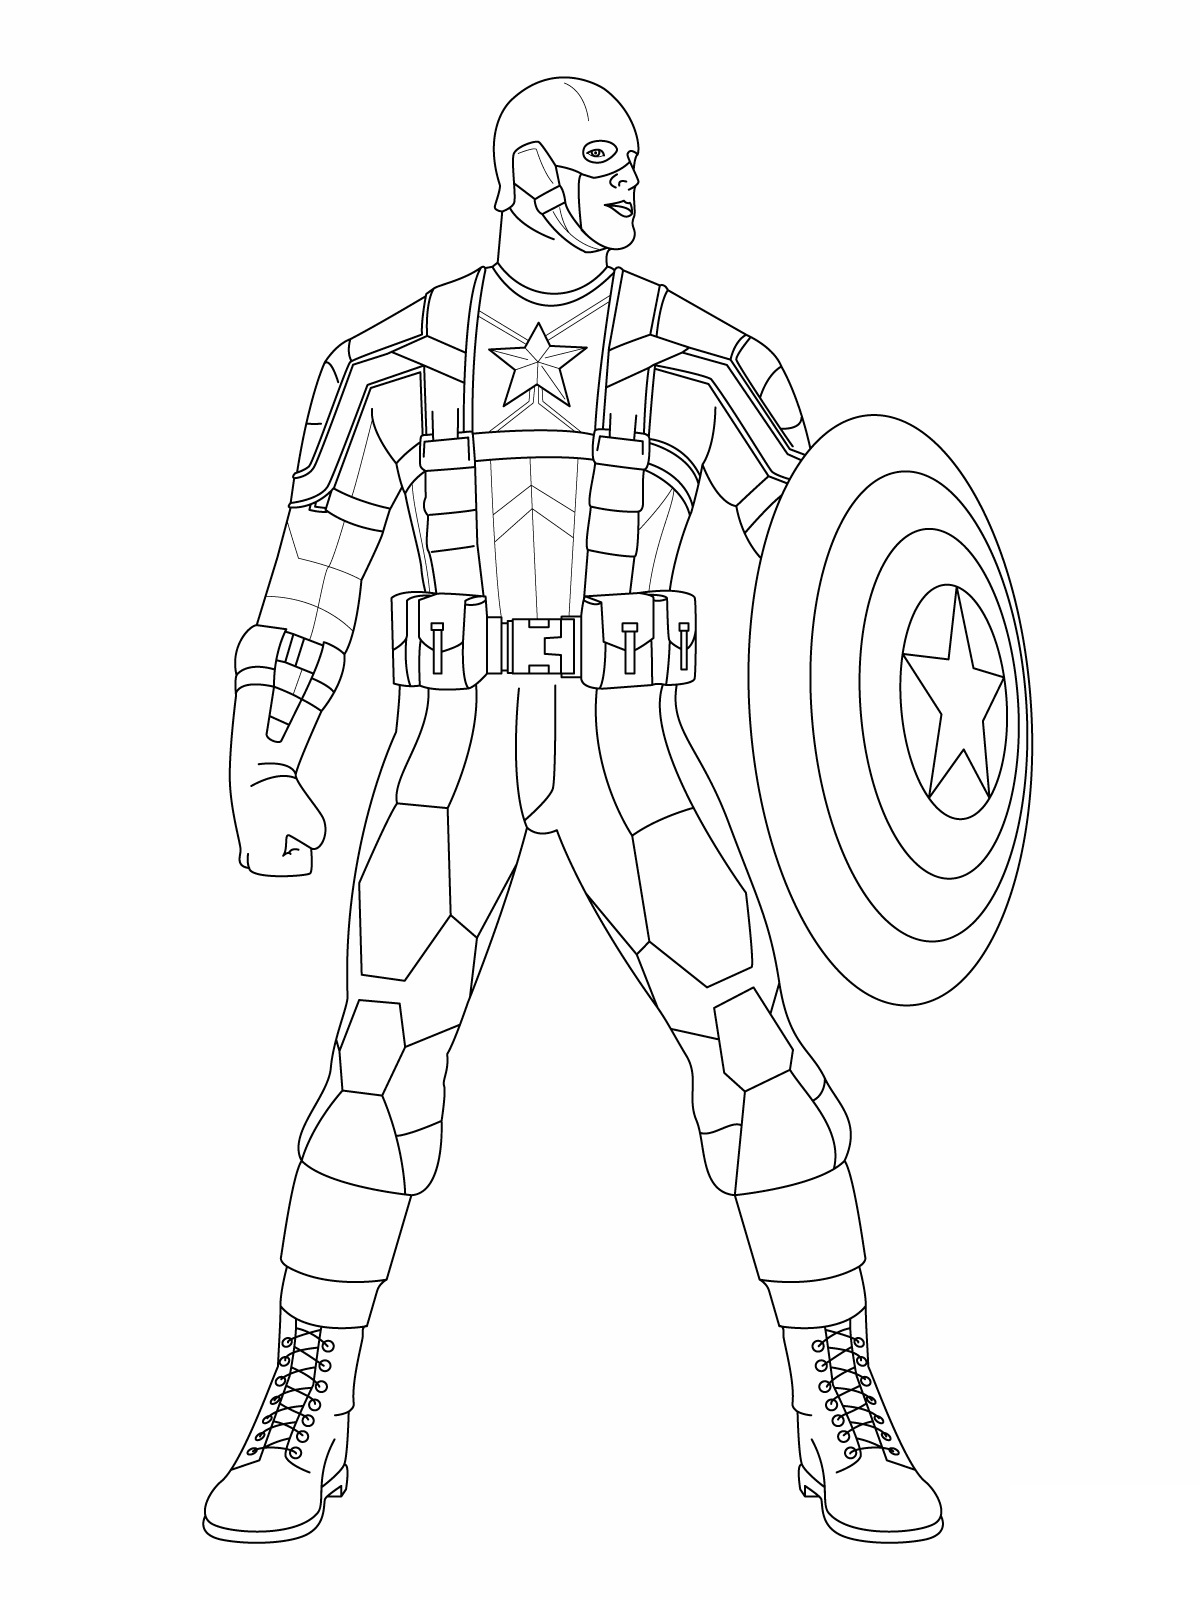 captain america for coloring free printable captain america coloring pages for kids coloring for america captain